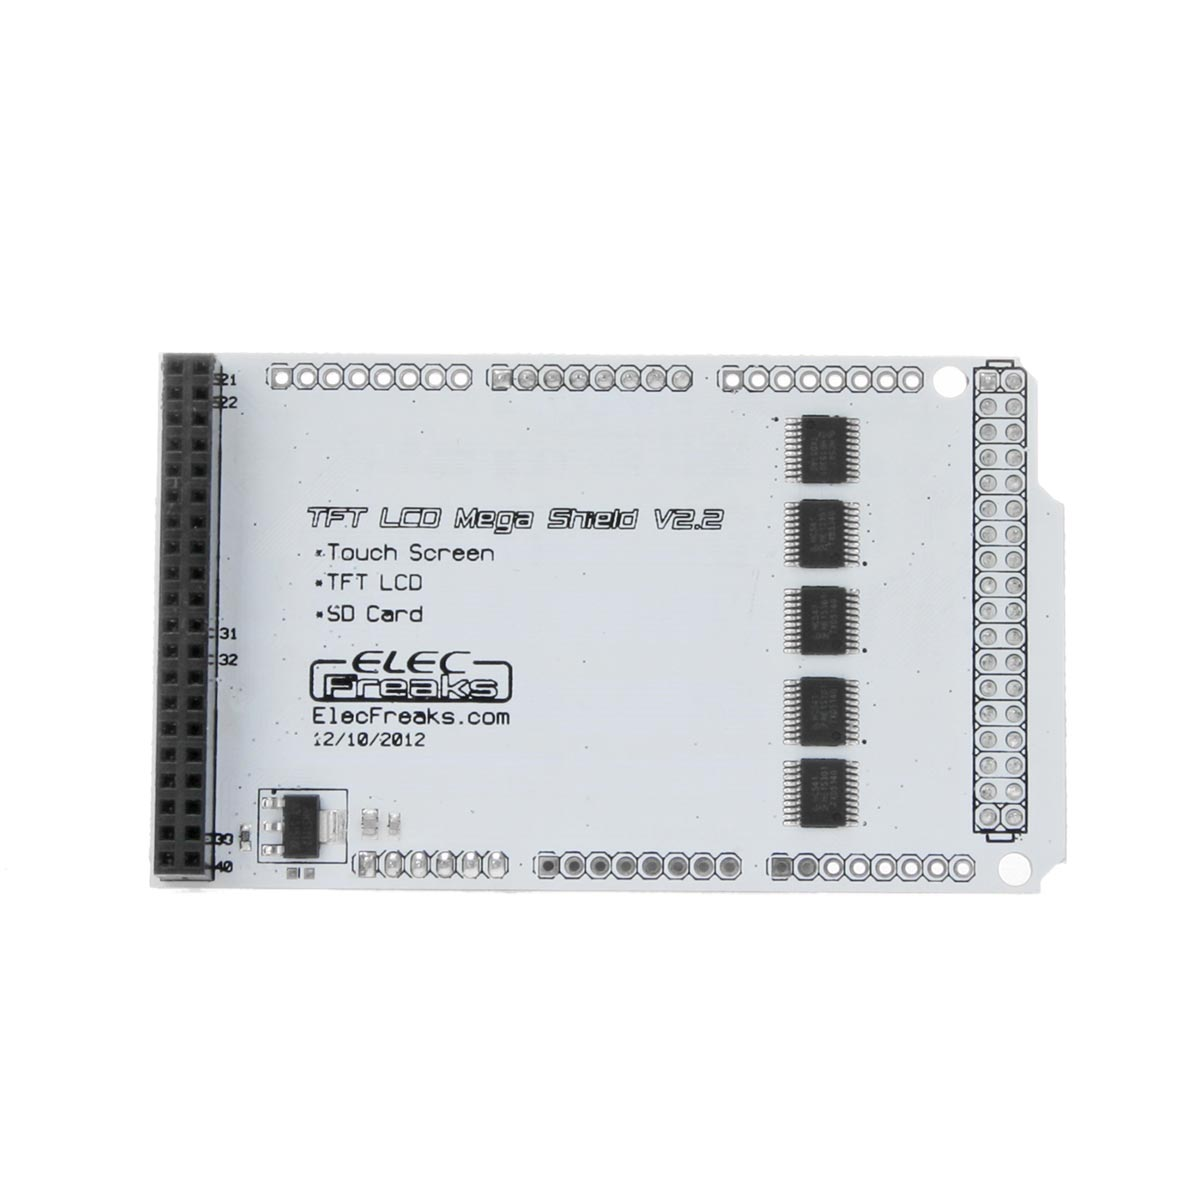 LCD TFT01 Mega Shield V2.0 Adapter Module - White nokia 5110 lcd module white backlight for arduino uno mega prototype